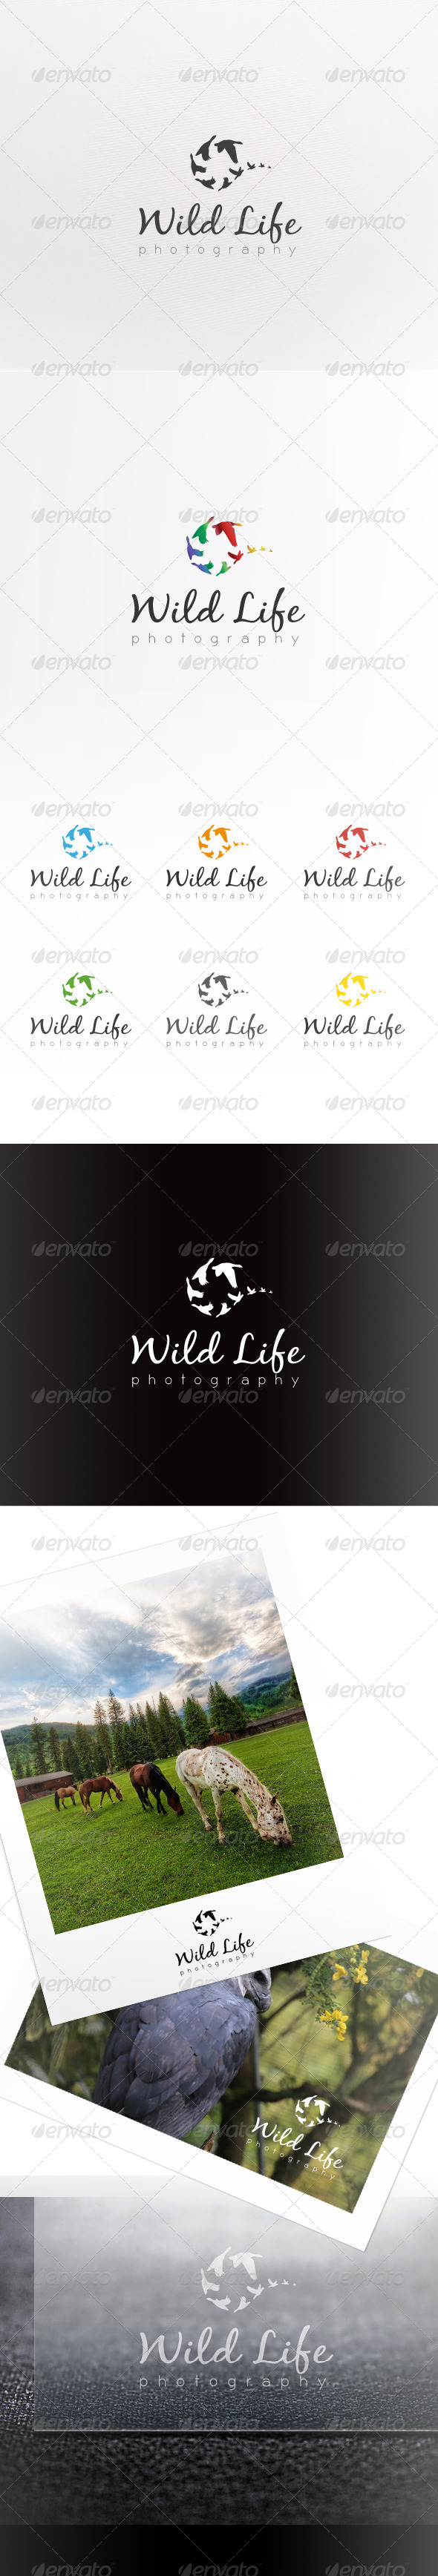 WildLife Photography Logo - Animals Logo Templates